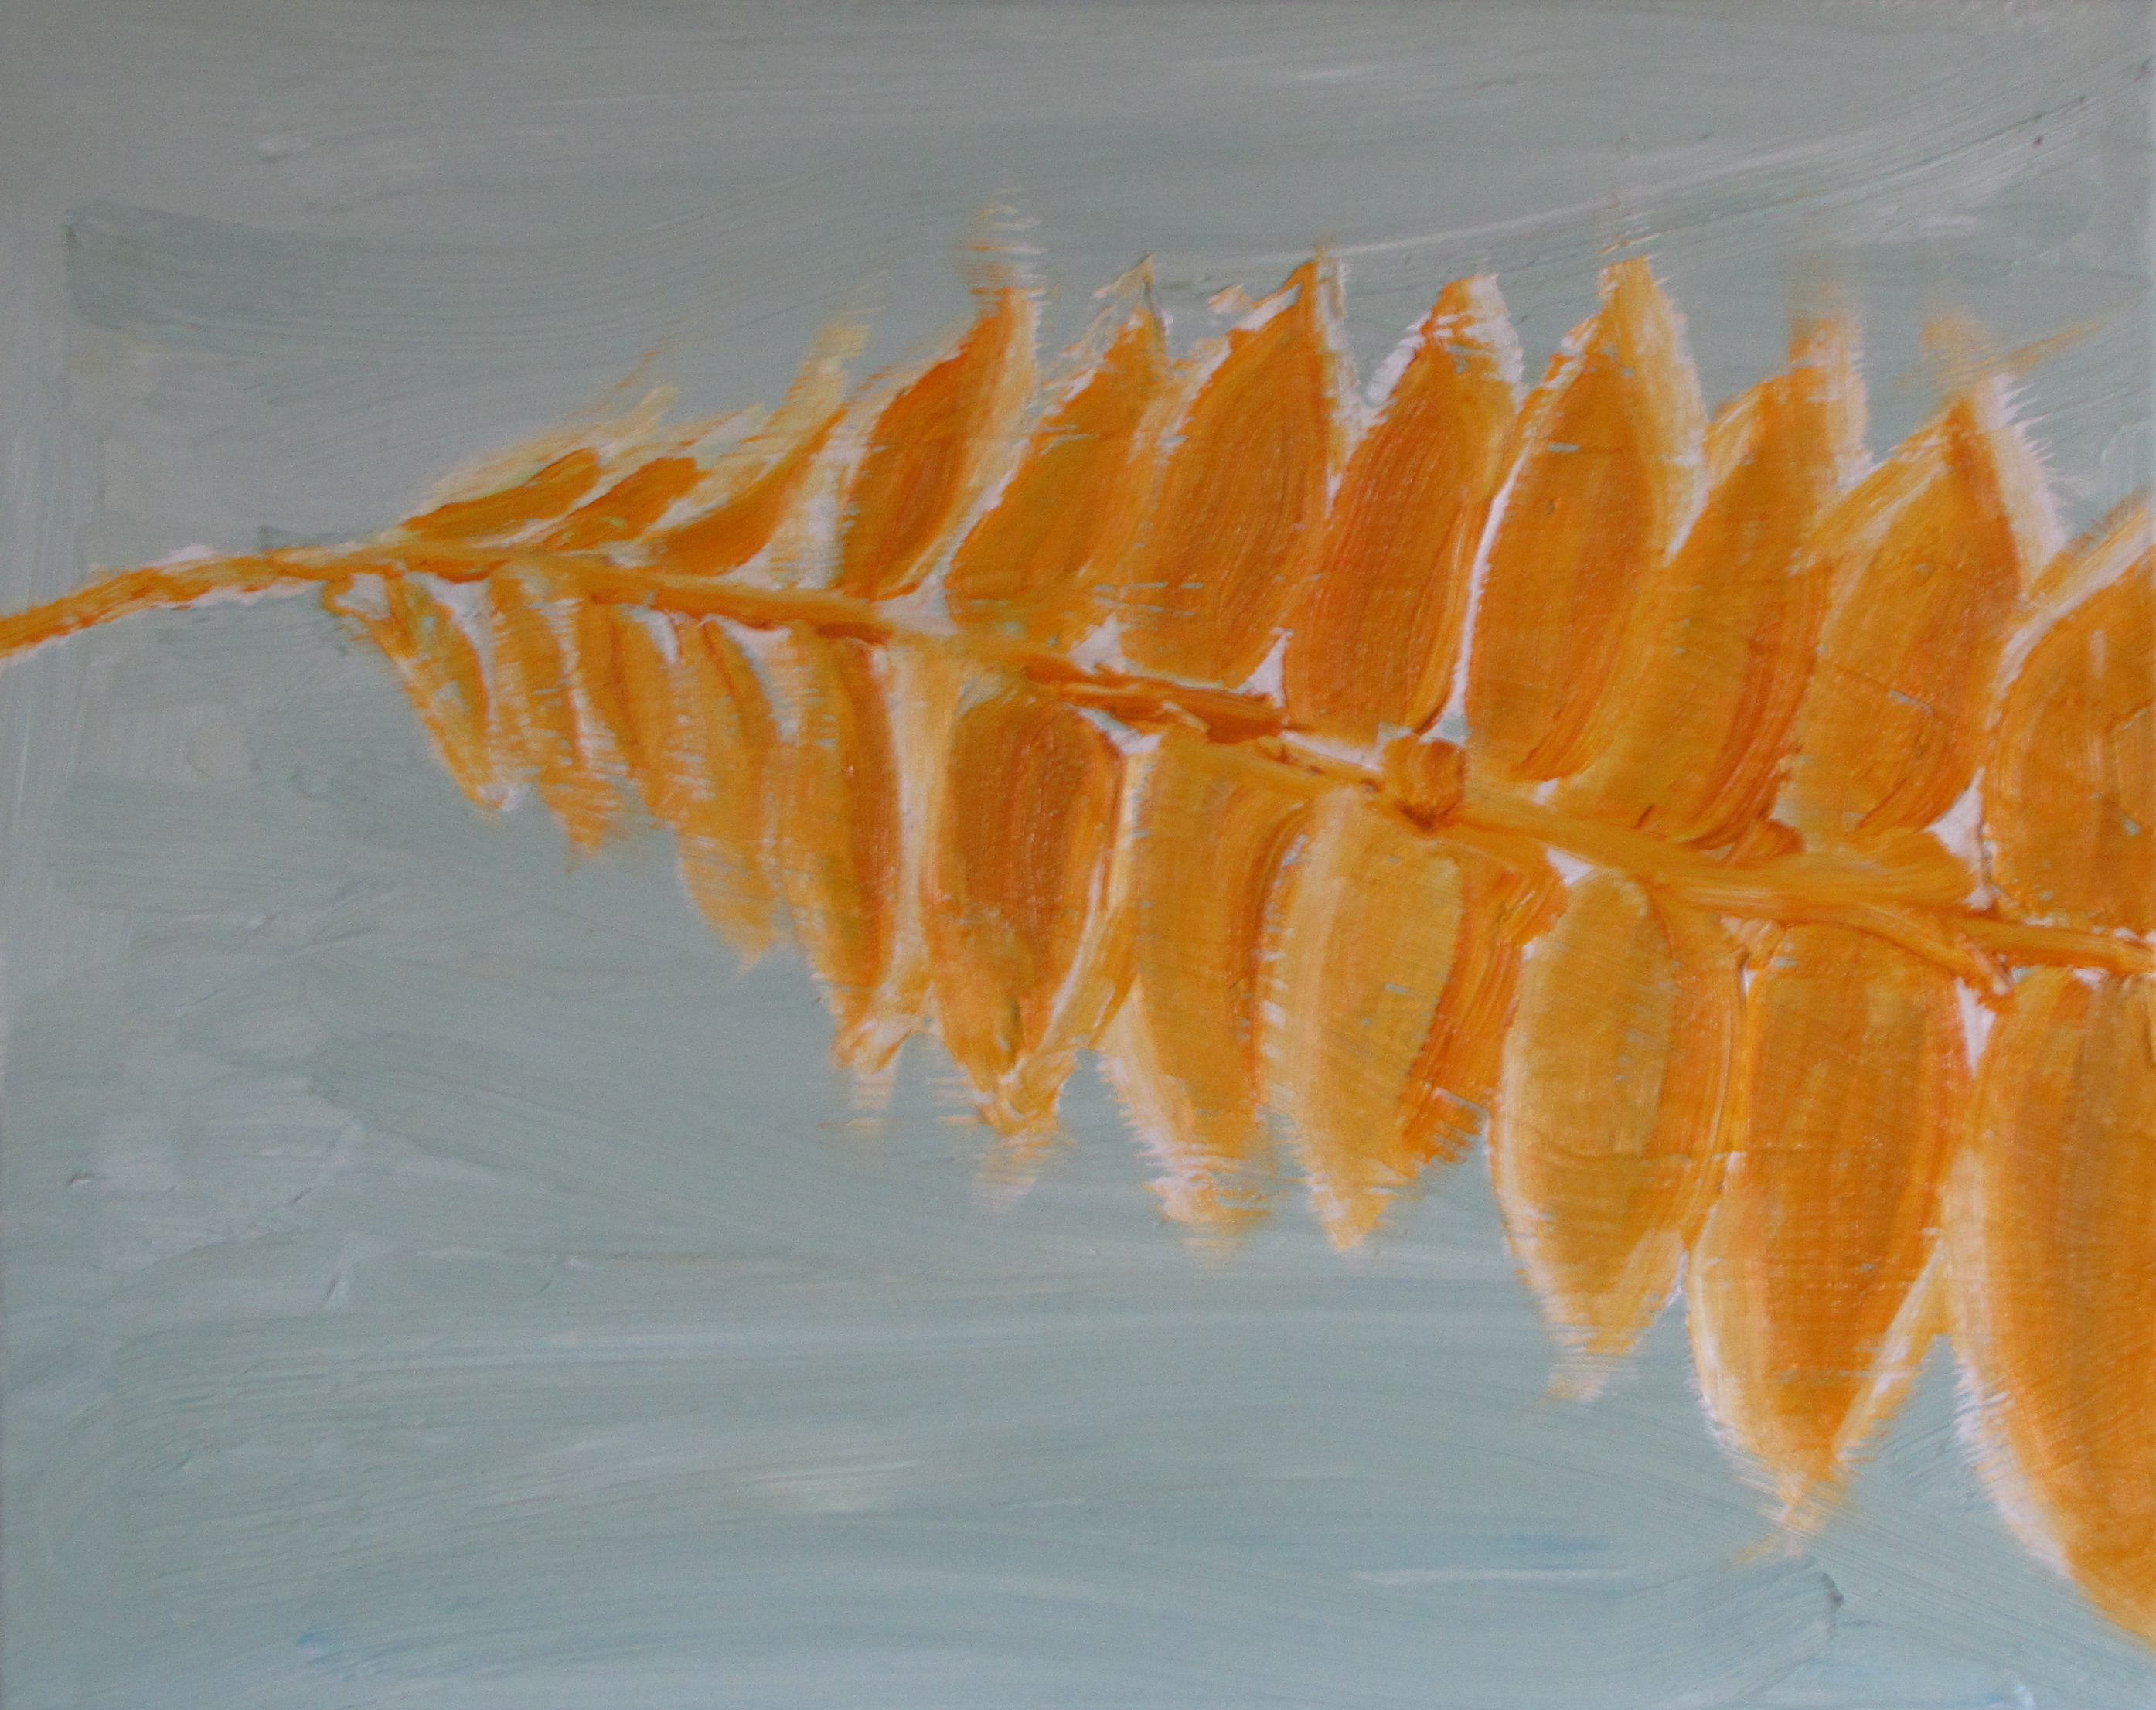 Seed Head, Afternoon, Russell Steven Powell oil on canvas, 20x16